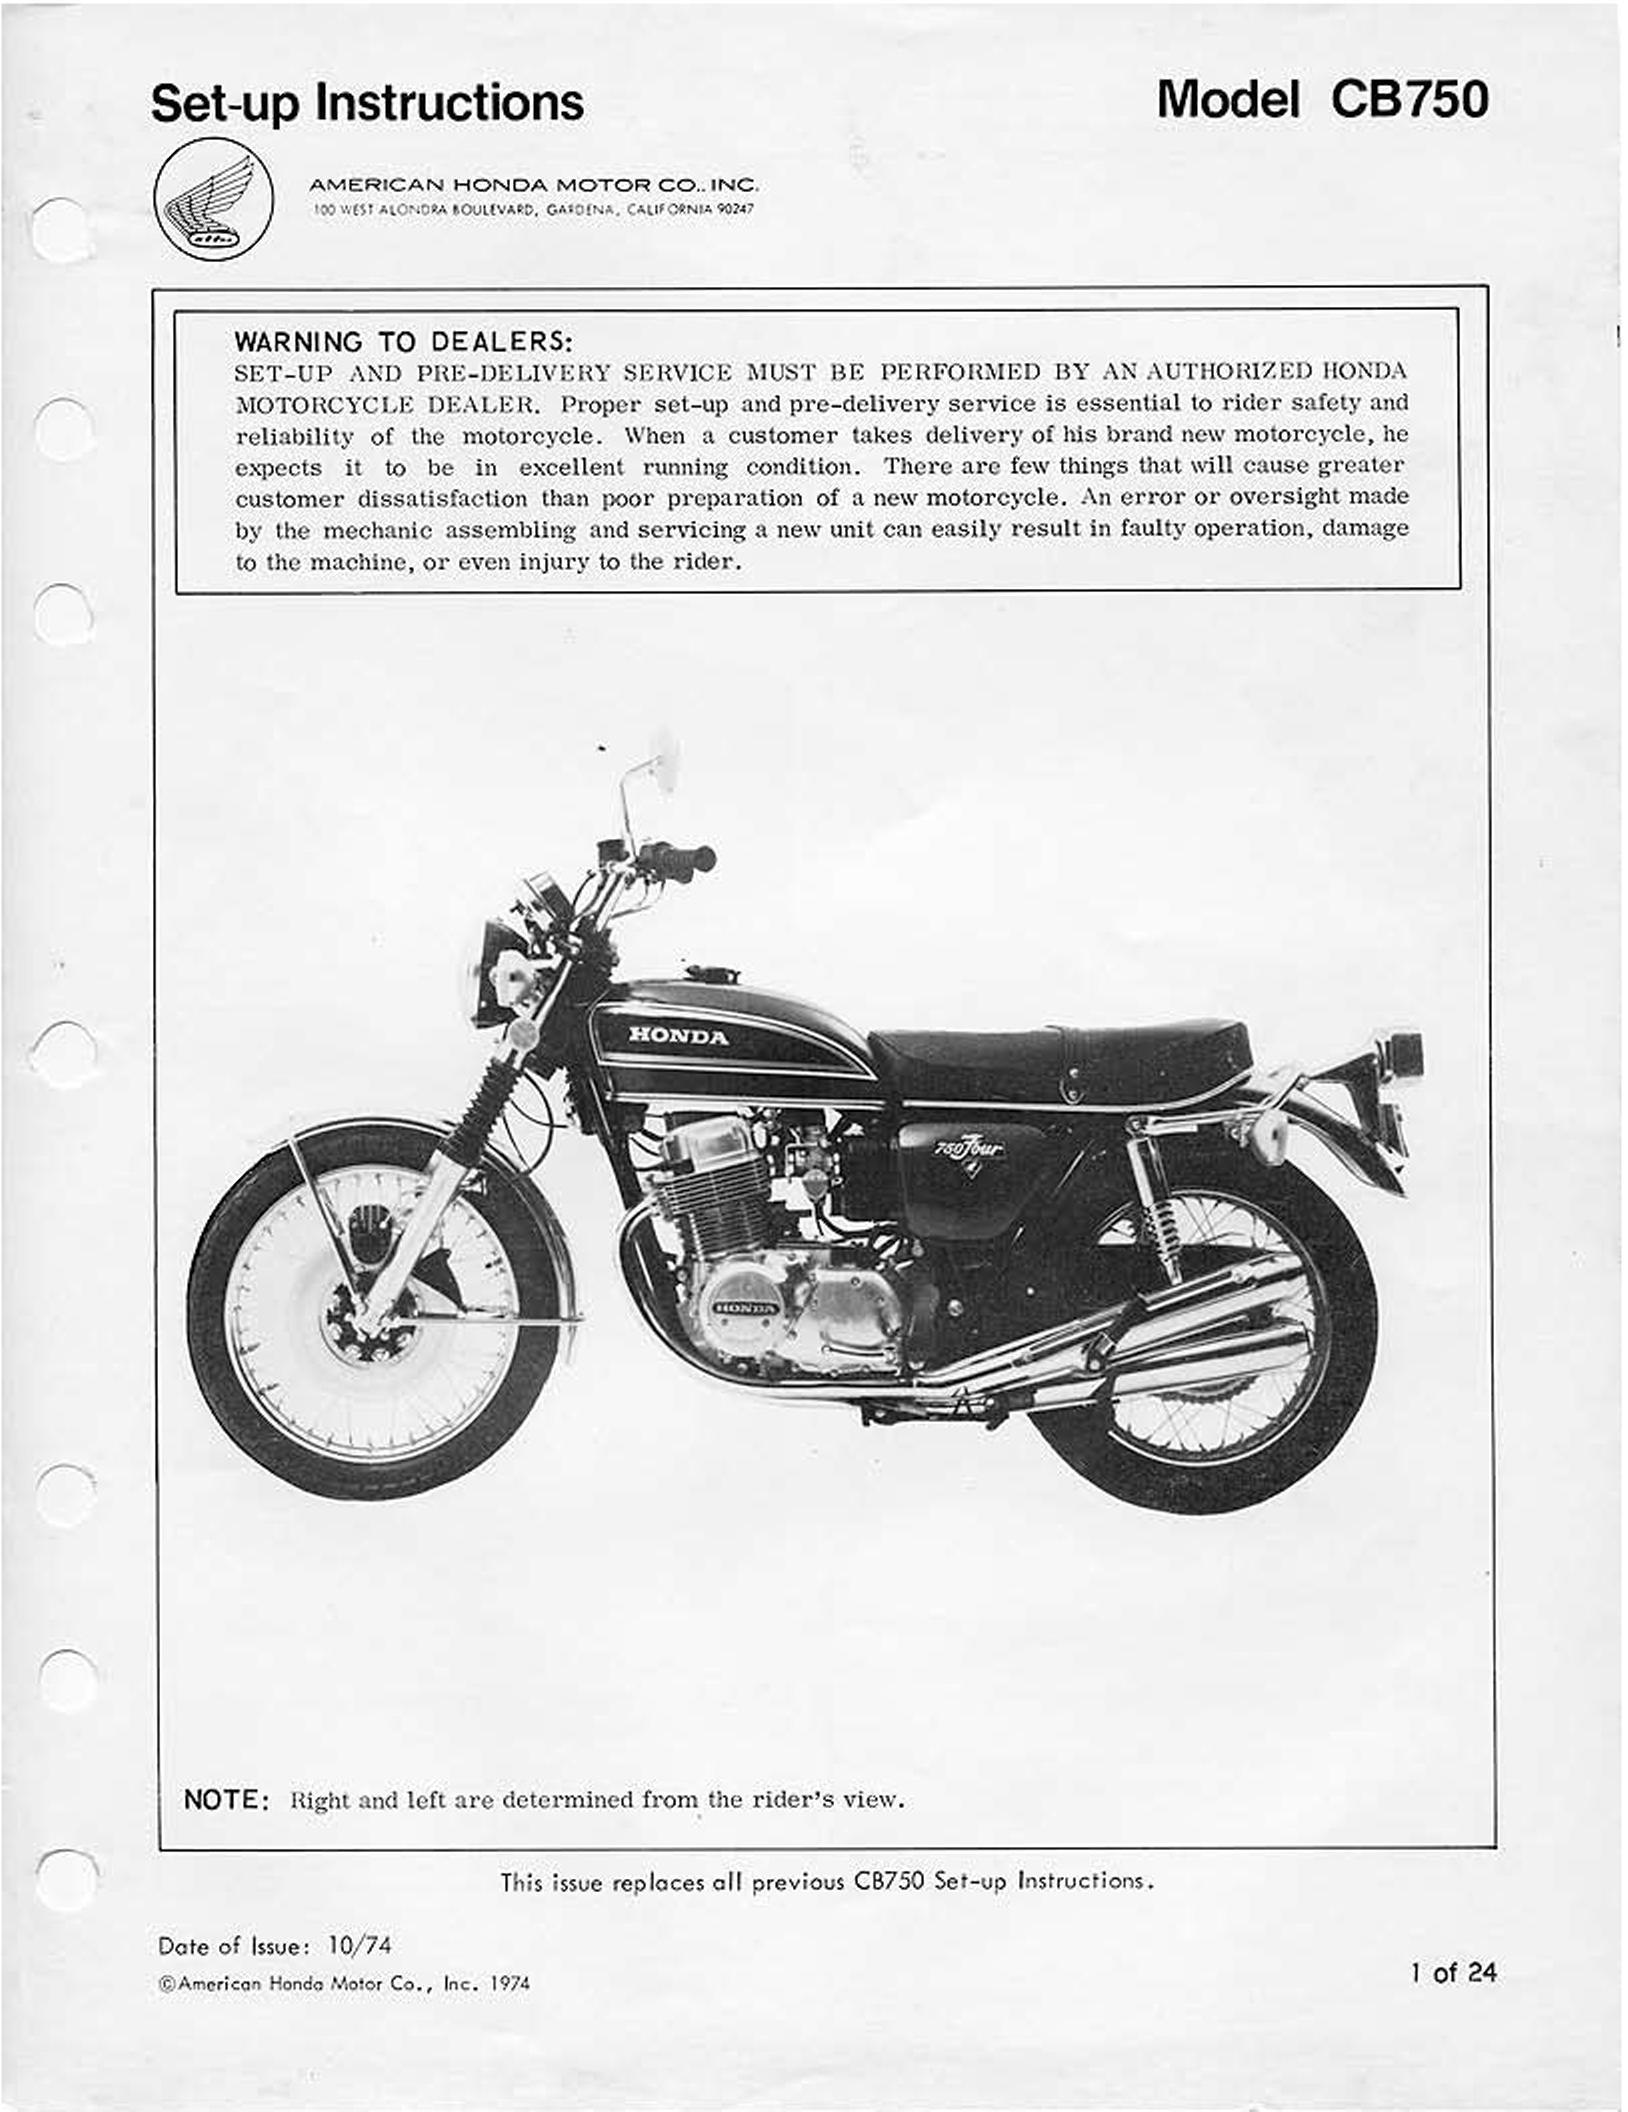 Setup manual for Honda CB750 K5